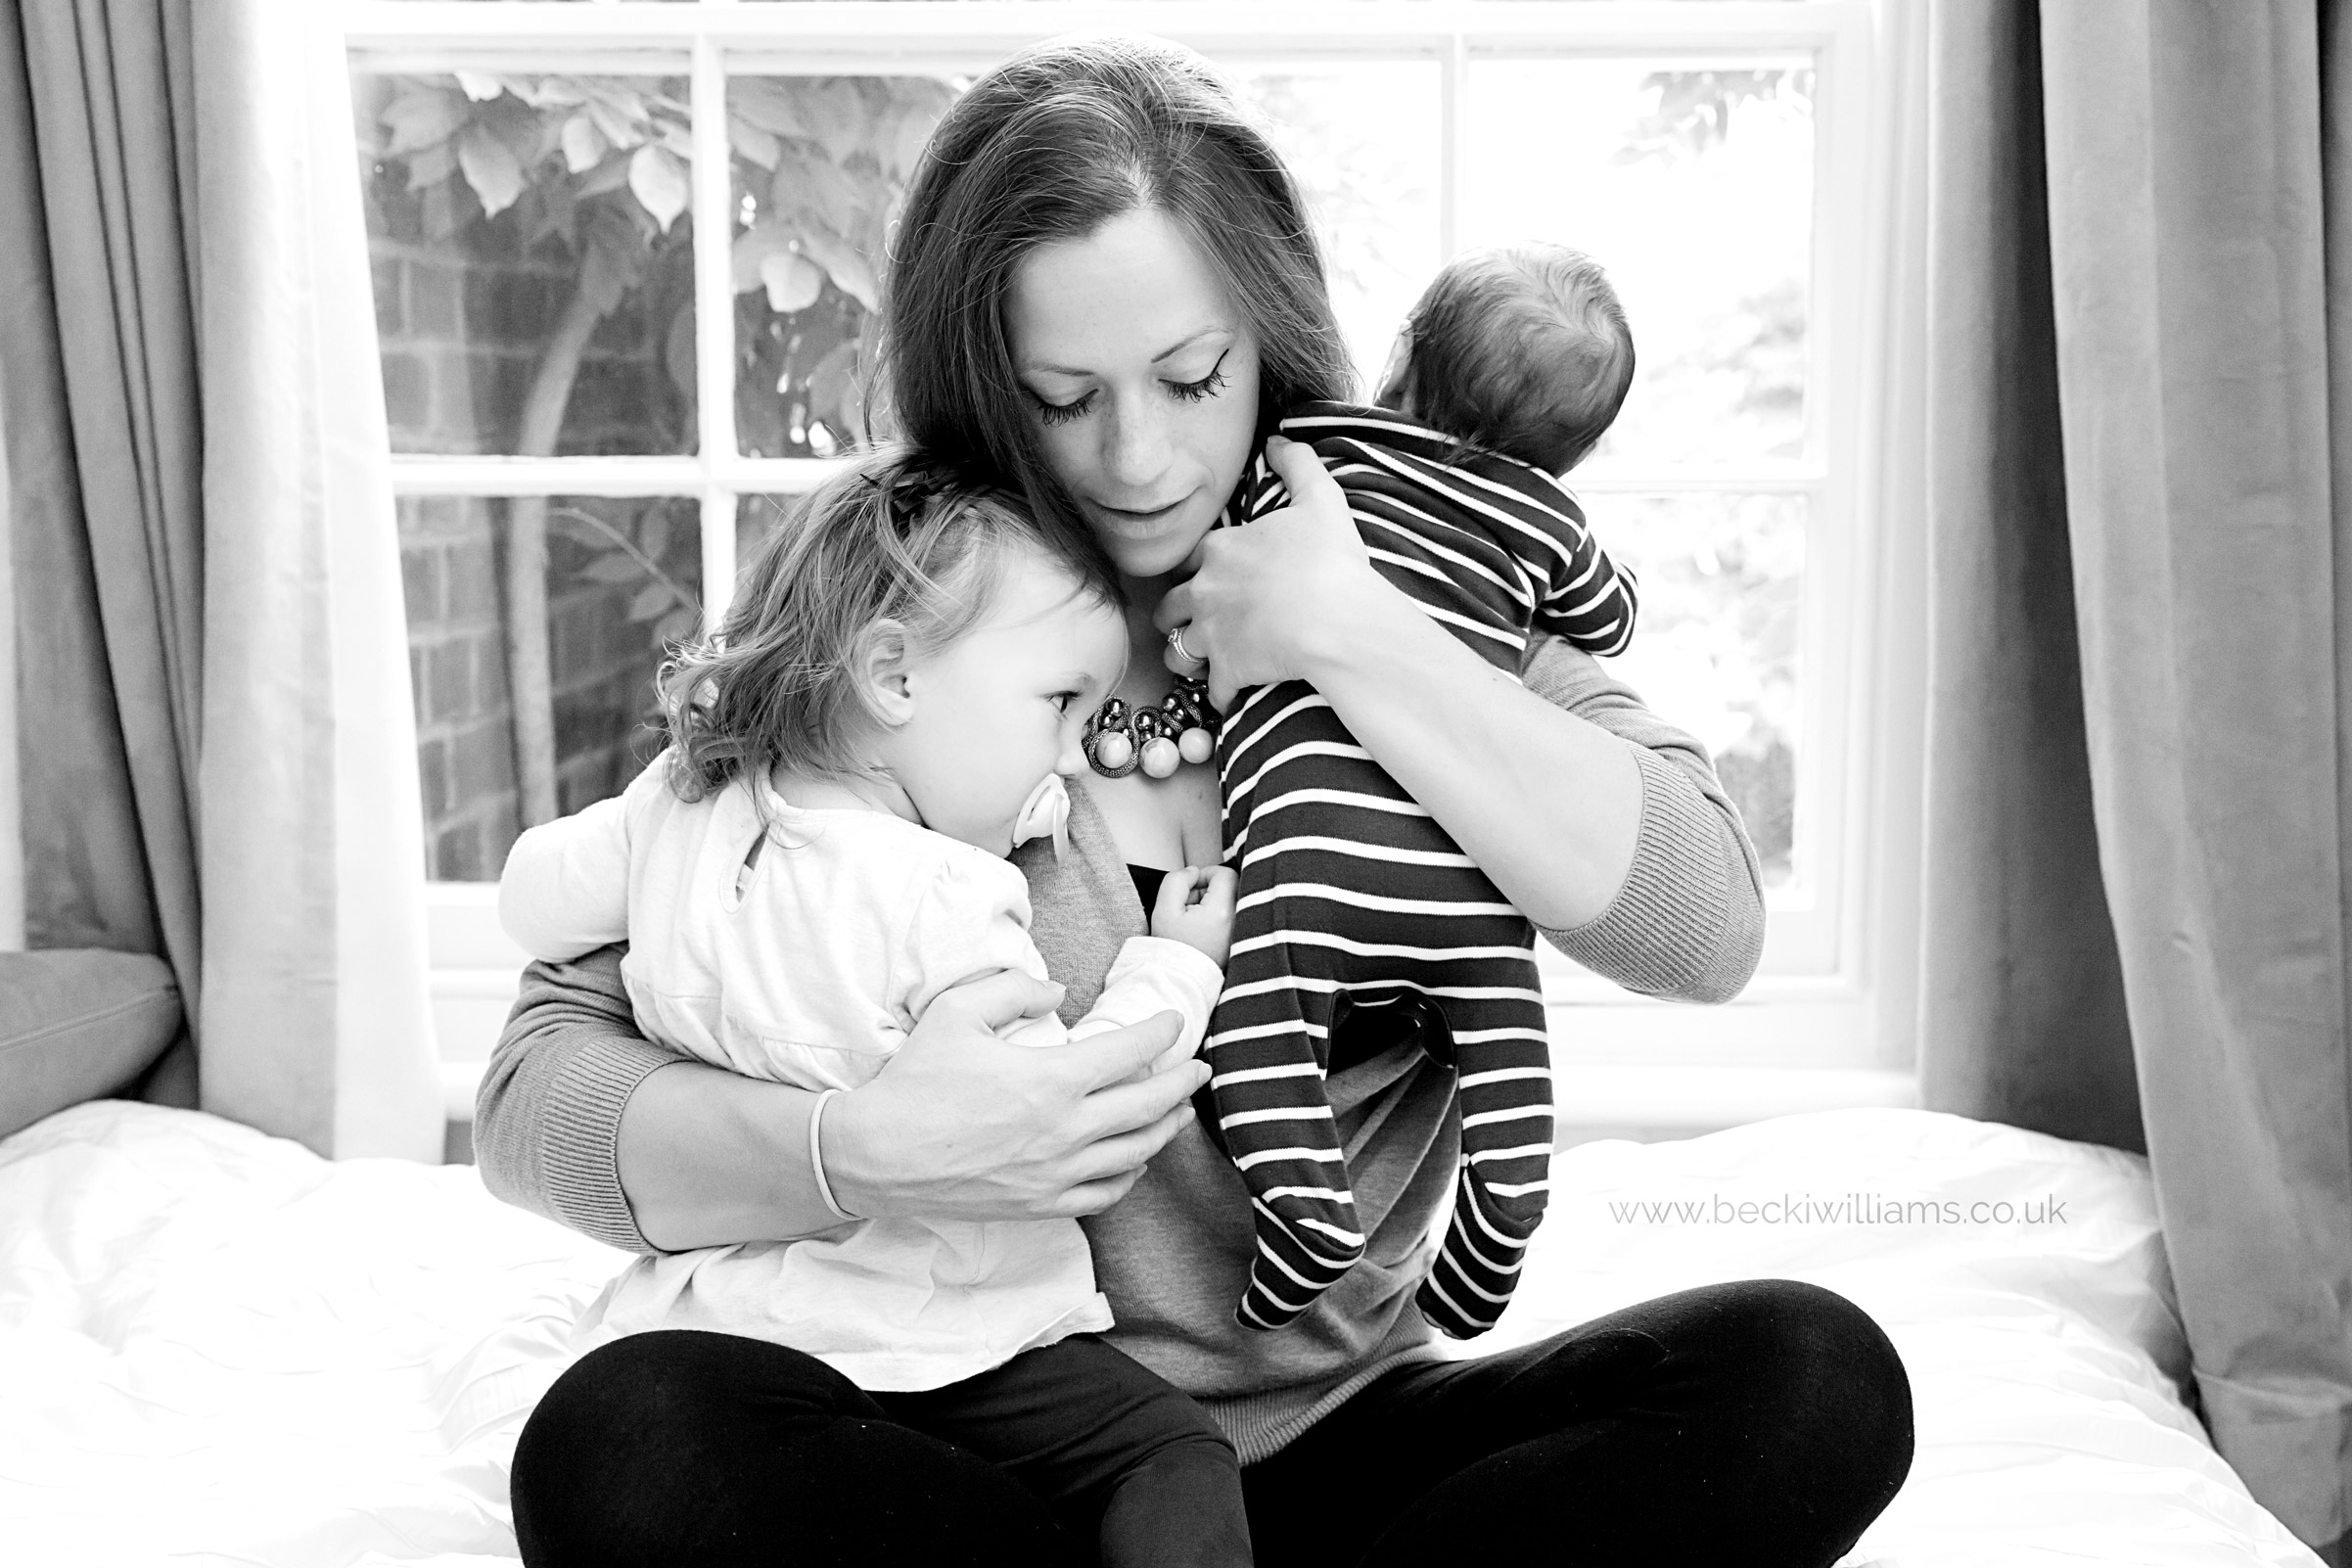 mum holds her newborn boy and 1 year old girl in a cuddle. black and white